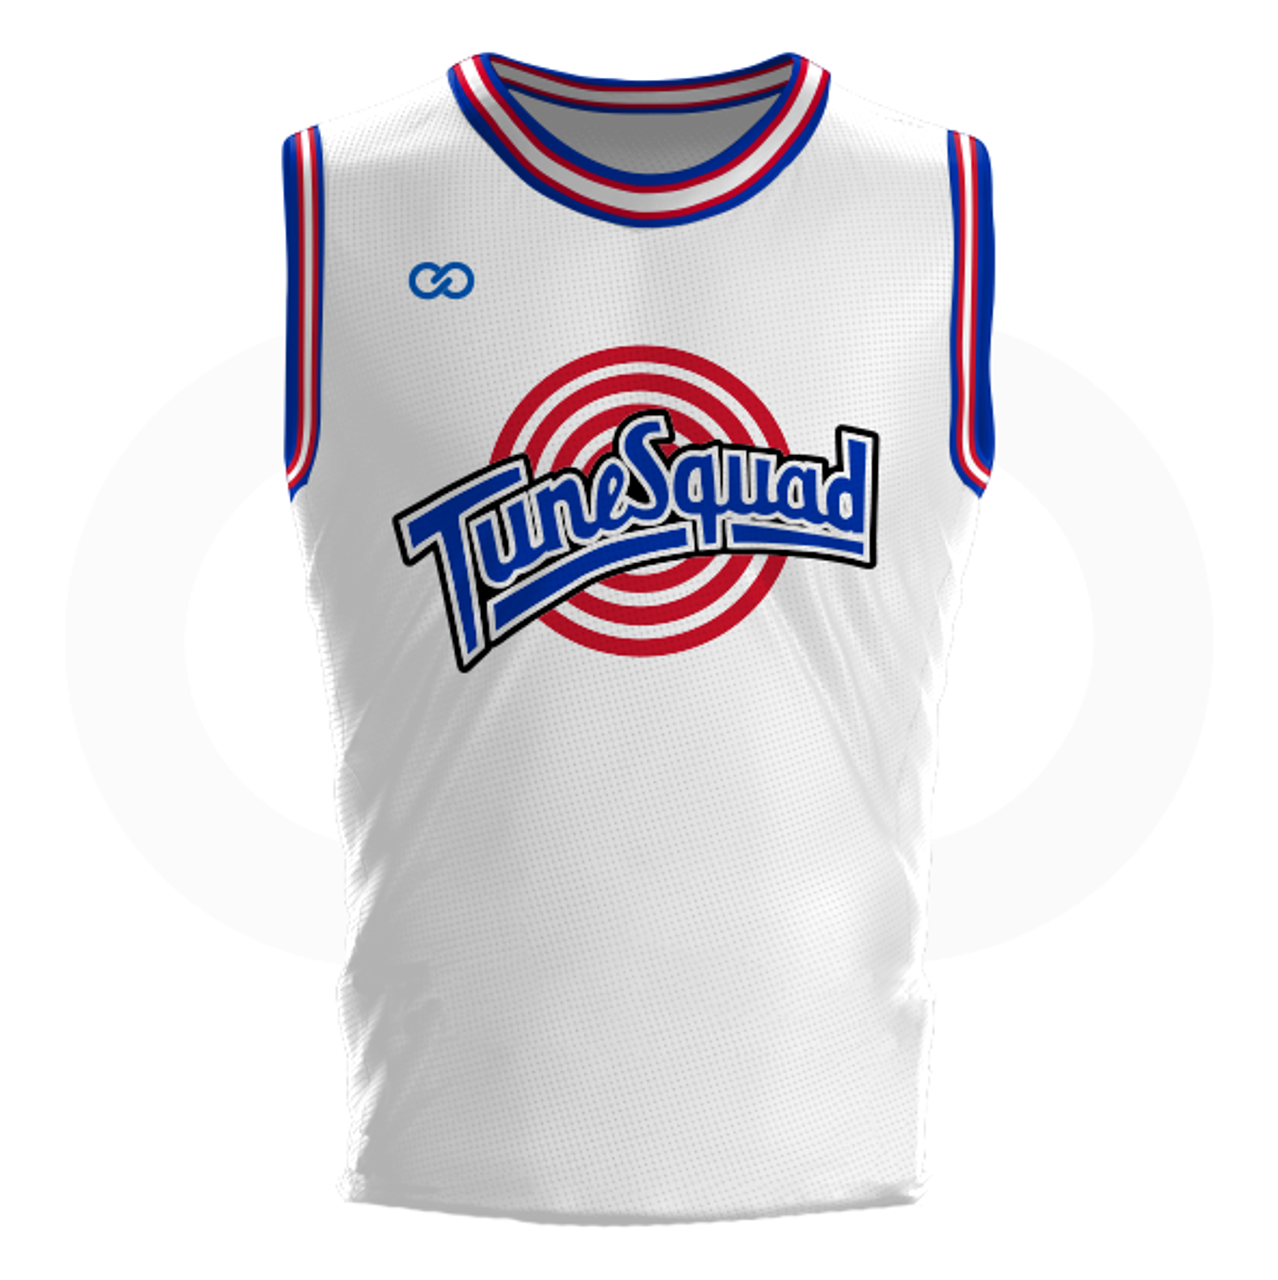 Tune Squad - Custom Basketball Jersey 39b27c3e3